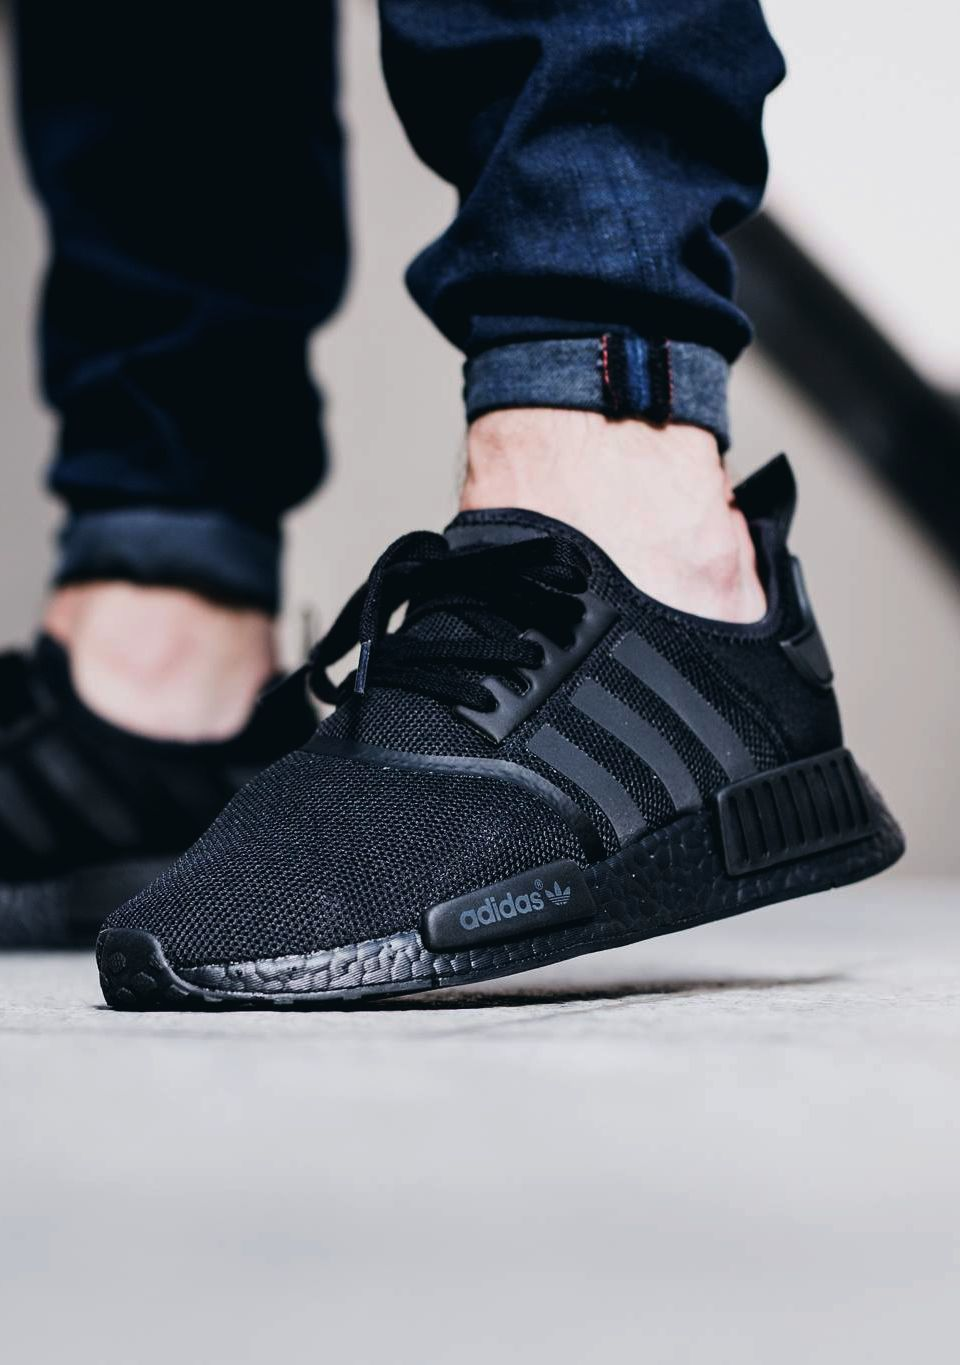 7e23df82c82f8 adidas NMD R1 Triple Black  sneakernews  Sneakers  StreetStyle  Kicks